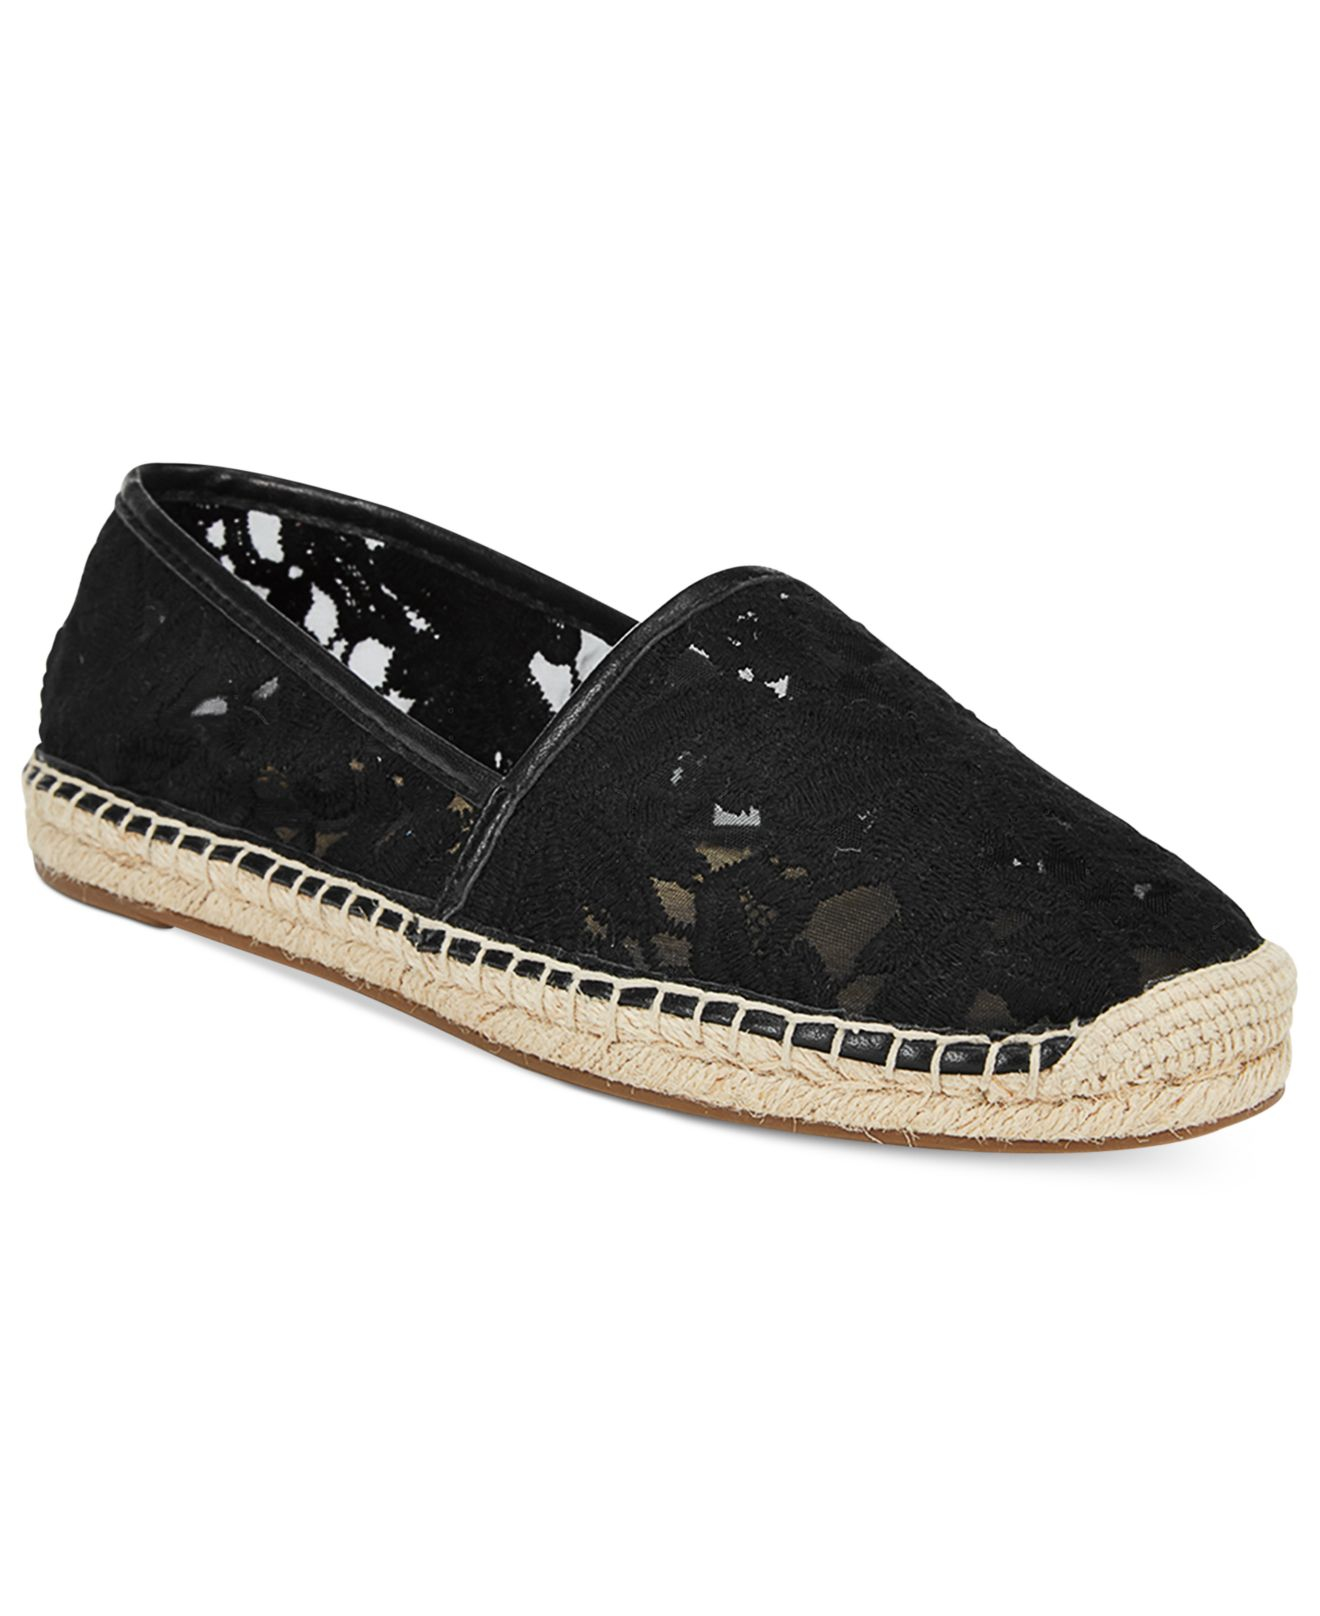 michael kors michael kendrick slip on espadrilles in black lyst. Black Bedroom Furniture Sets. Home Design Ideas